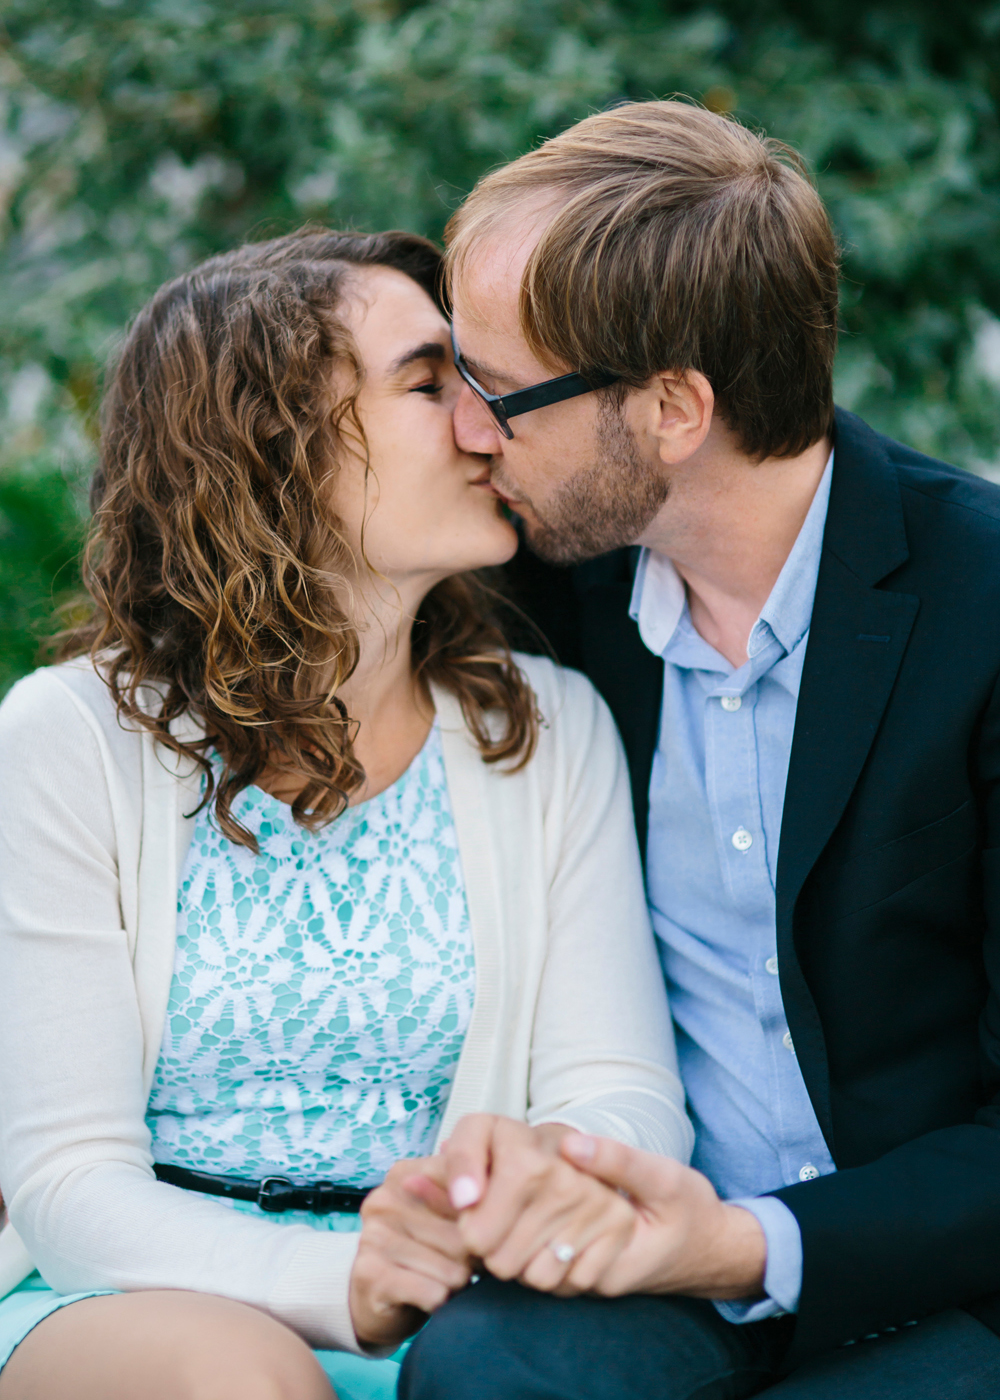 hayes-valley-alamo-square-sf-engagement-photography-lilouette-08.jpg